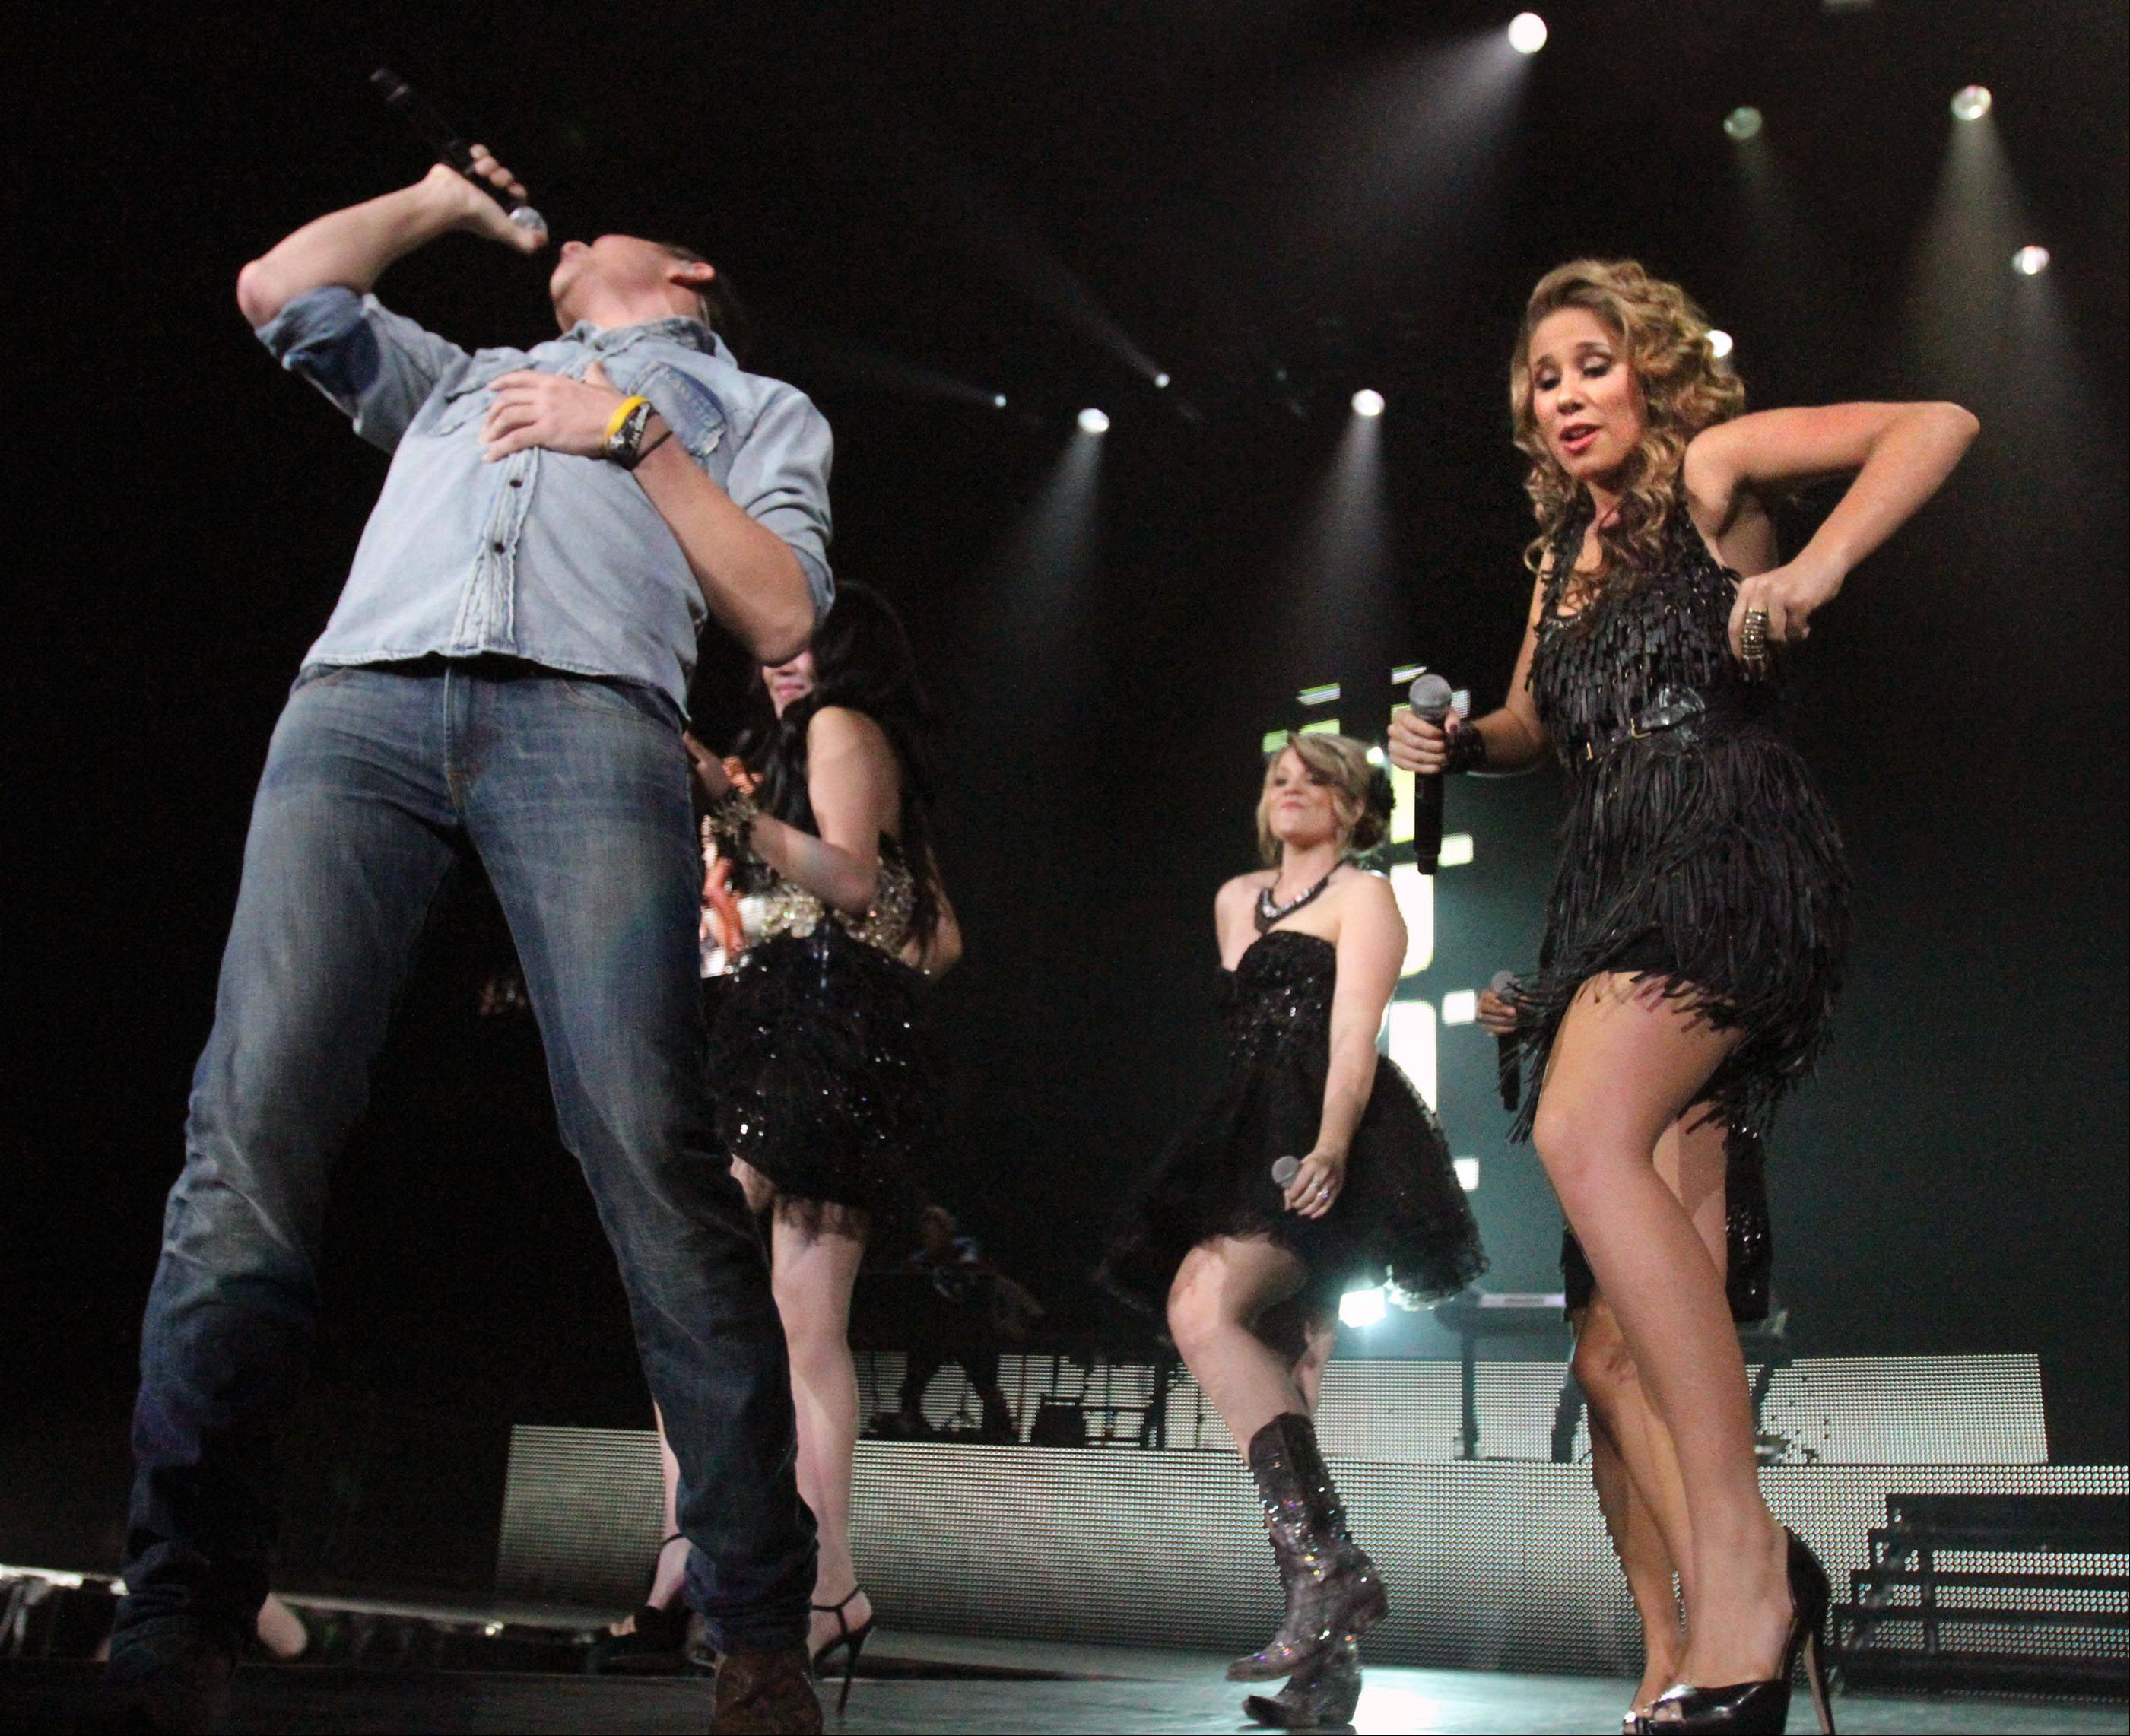 Haley Reinhart performs with Scotty McCreery.